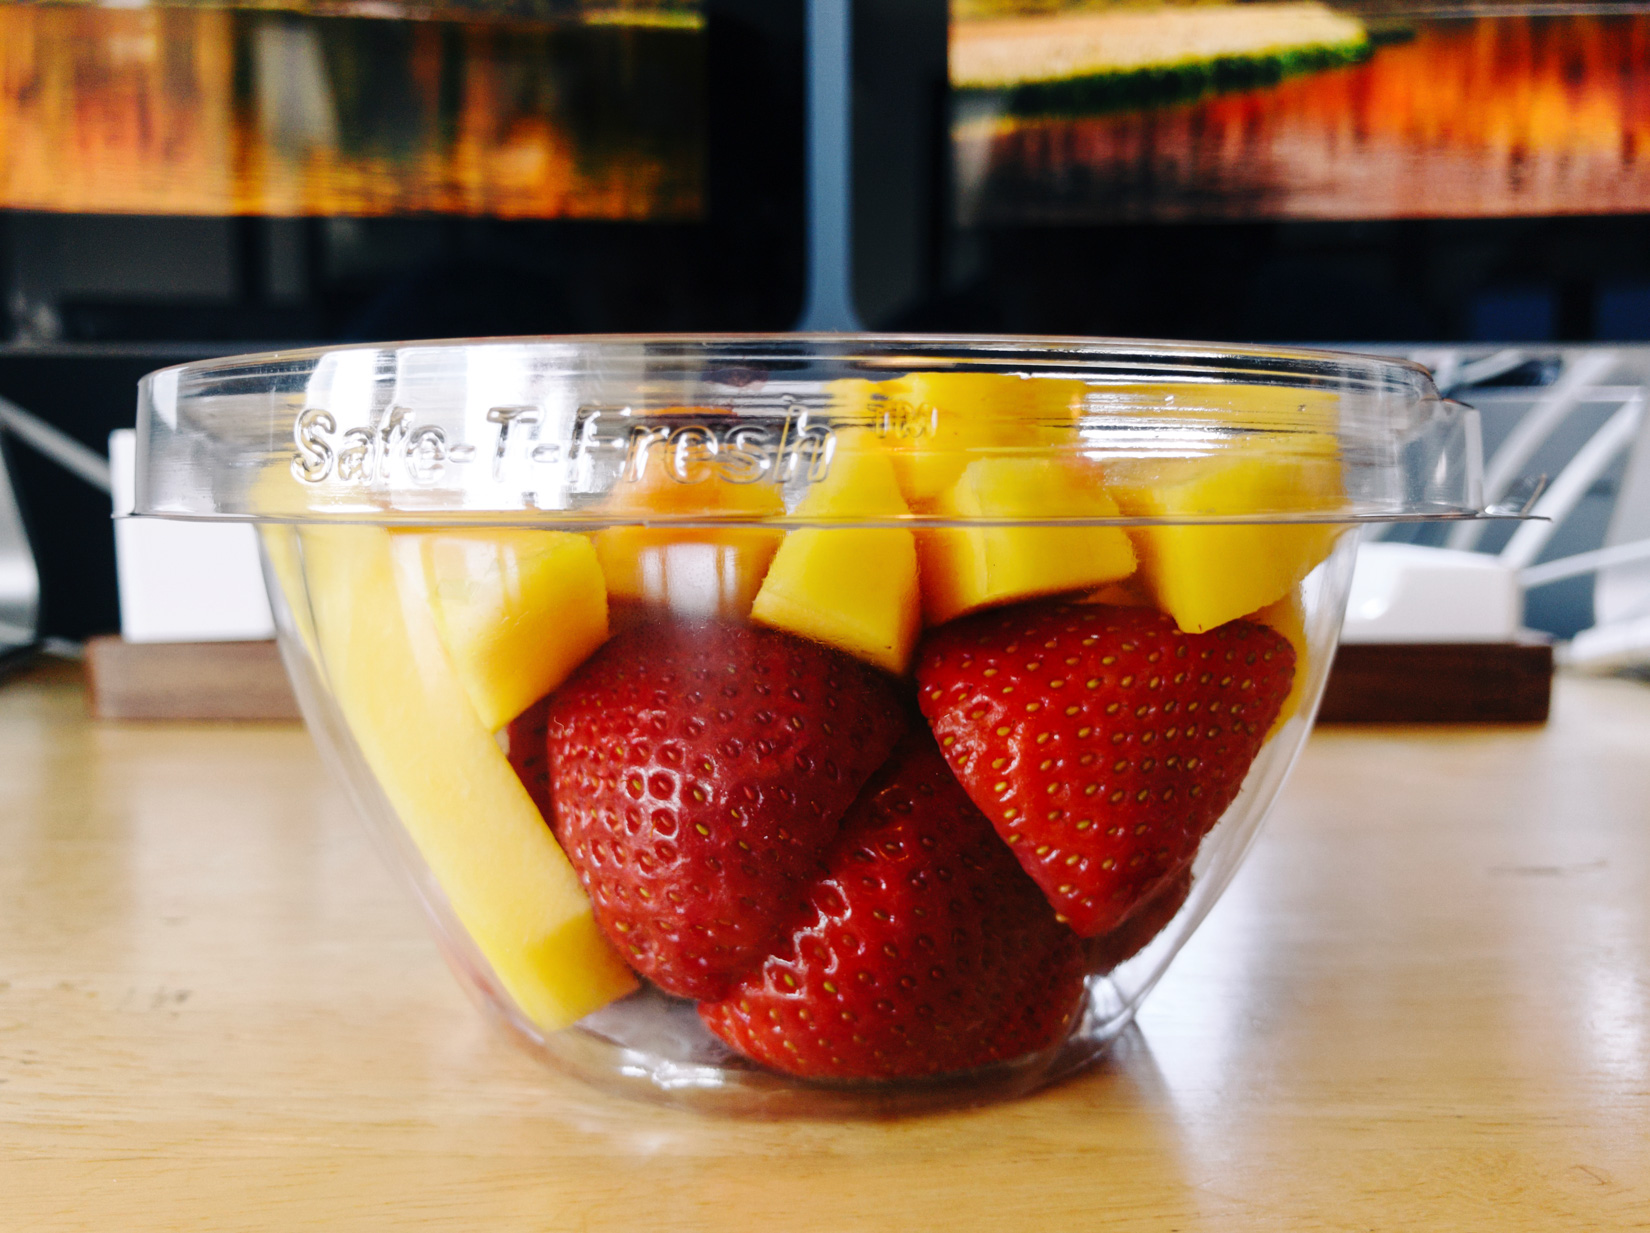 Mango and Strawberries